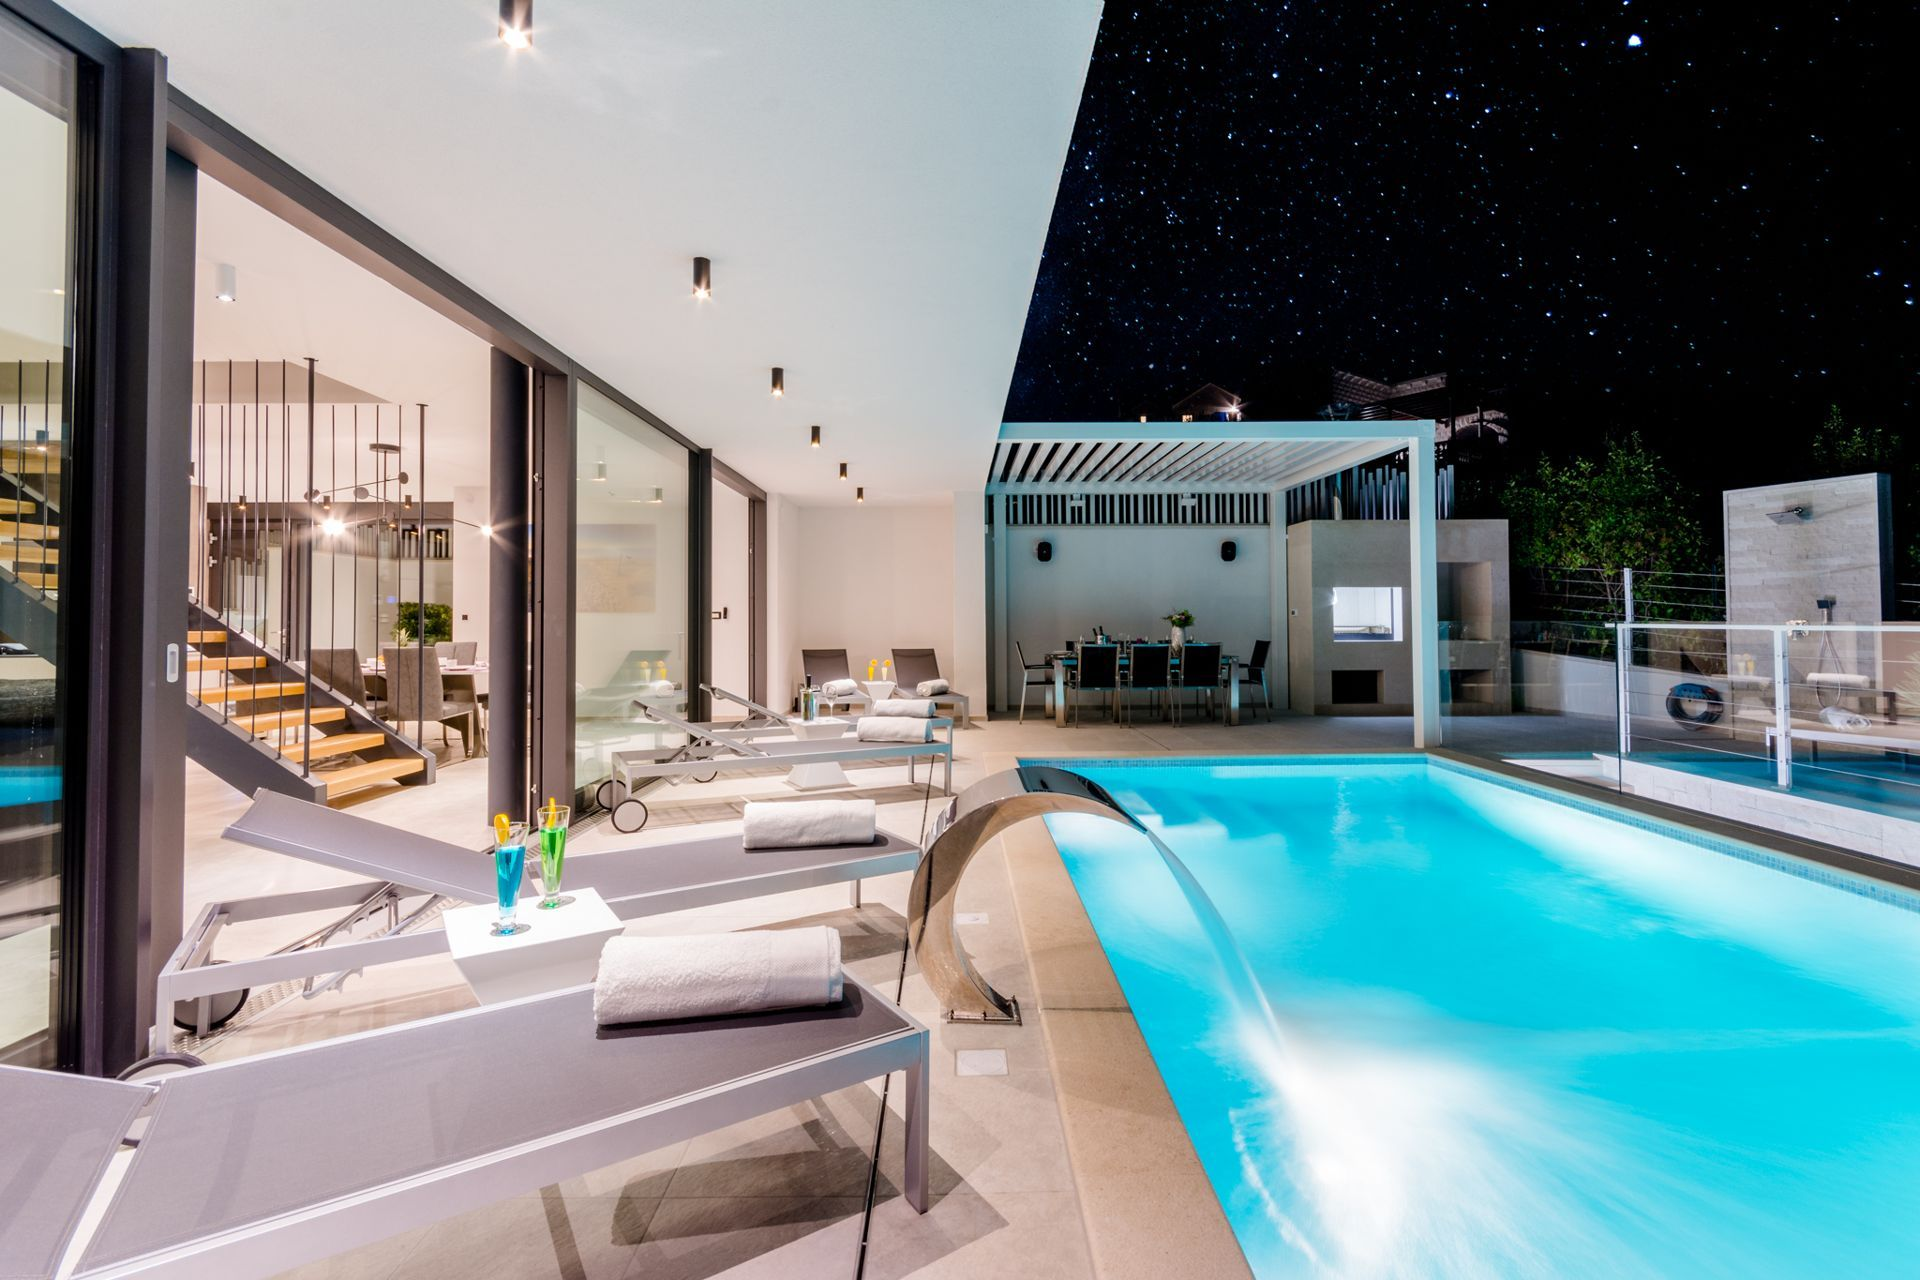 Swimming Pool At Luxury Villa Soleil With Swimming Pool By Night What Do You Think About Holidaying Here Luxury Villa Villa Vacation Home